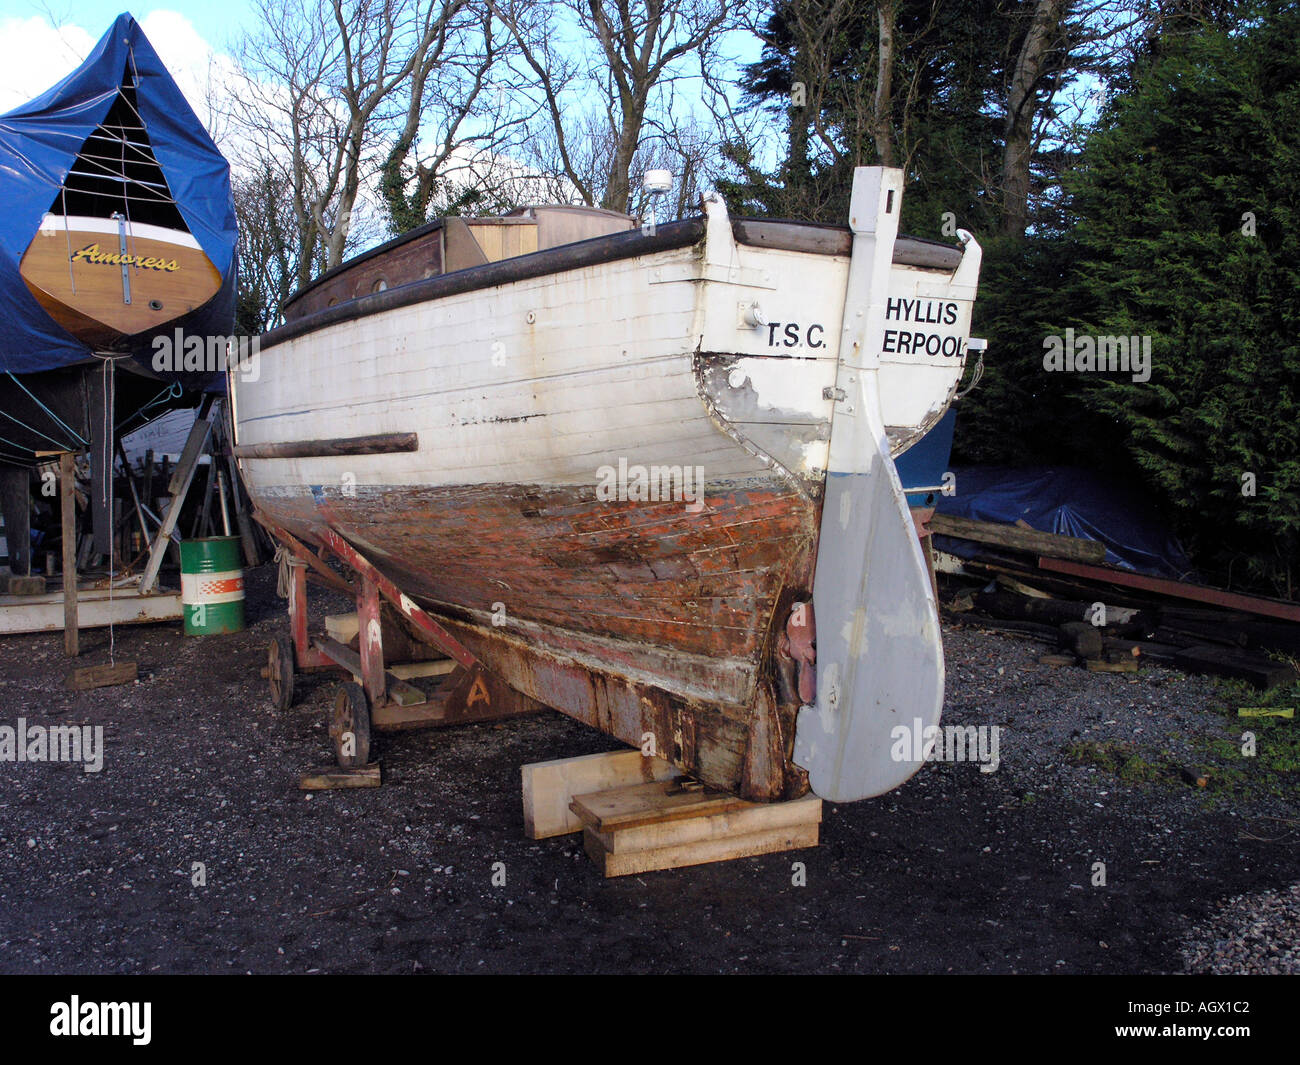 Wooden boat in boatyard for repainting - Stock Image